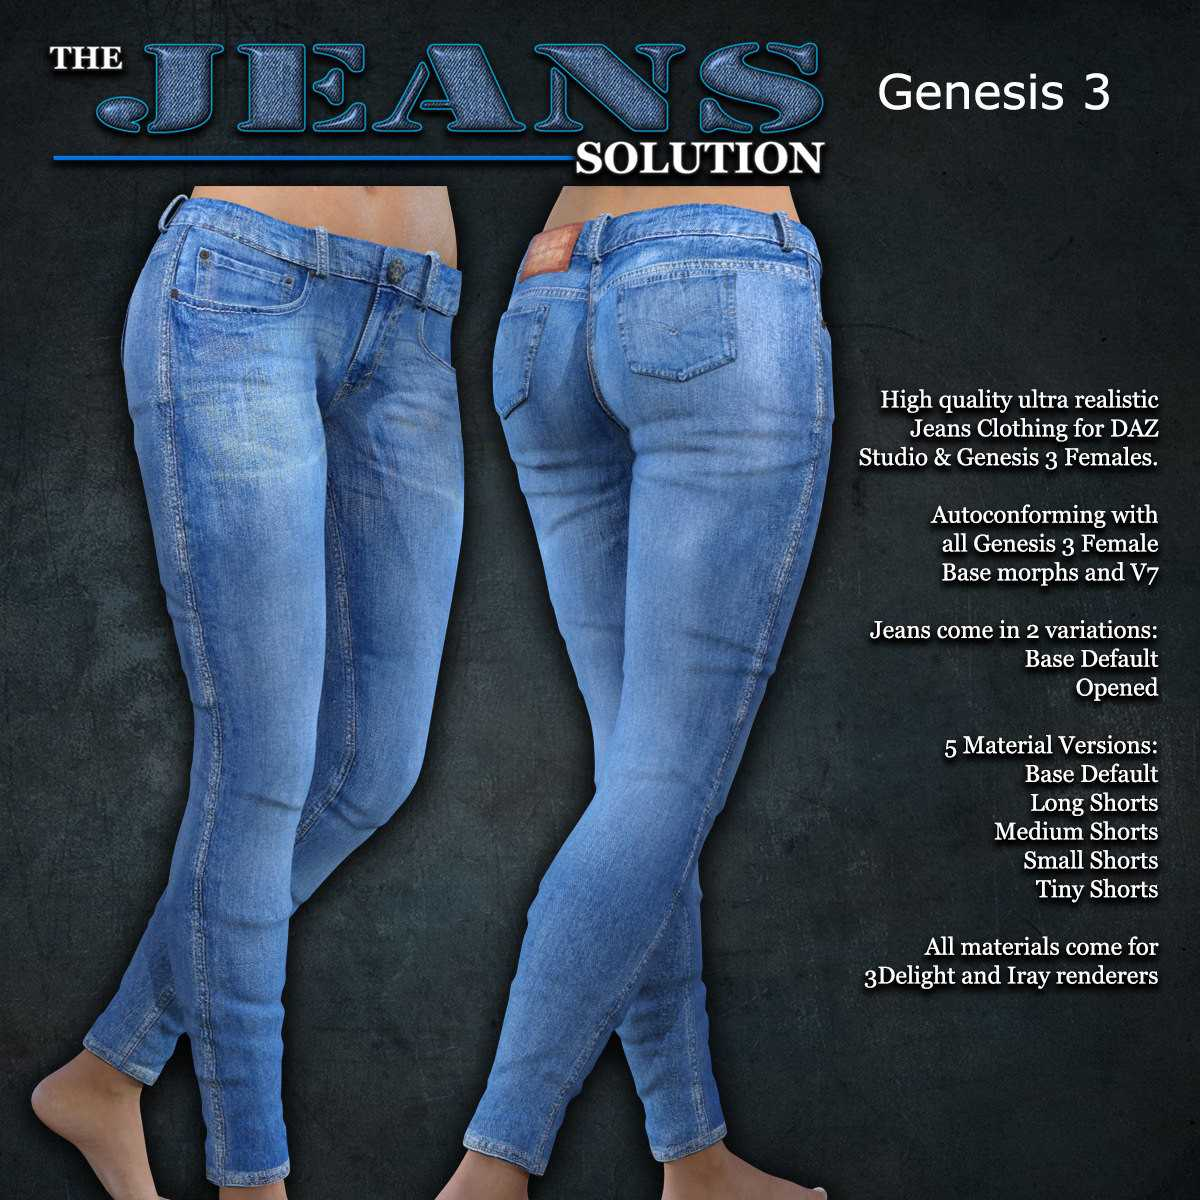 Exnem Jeans Solution for G3